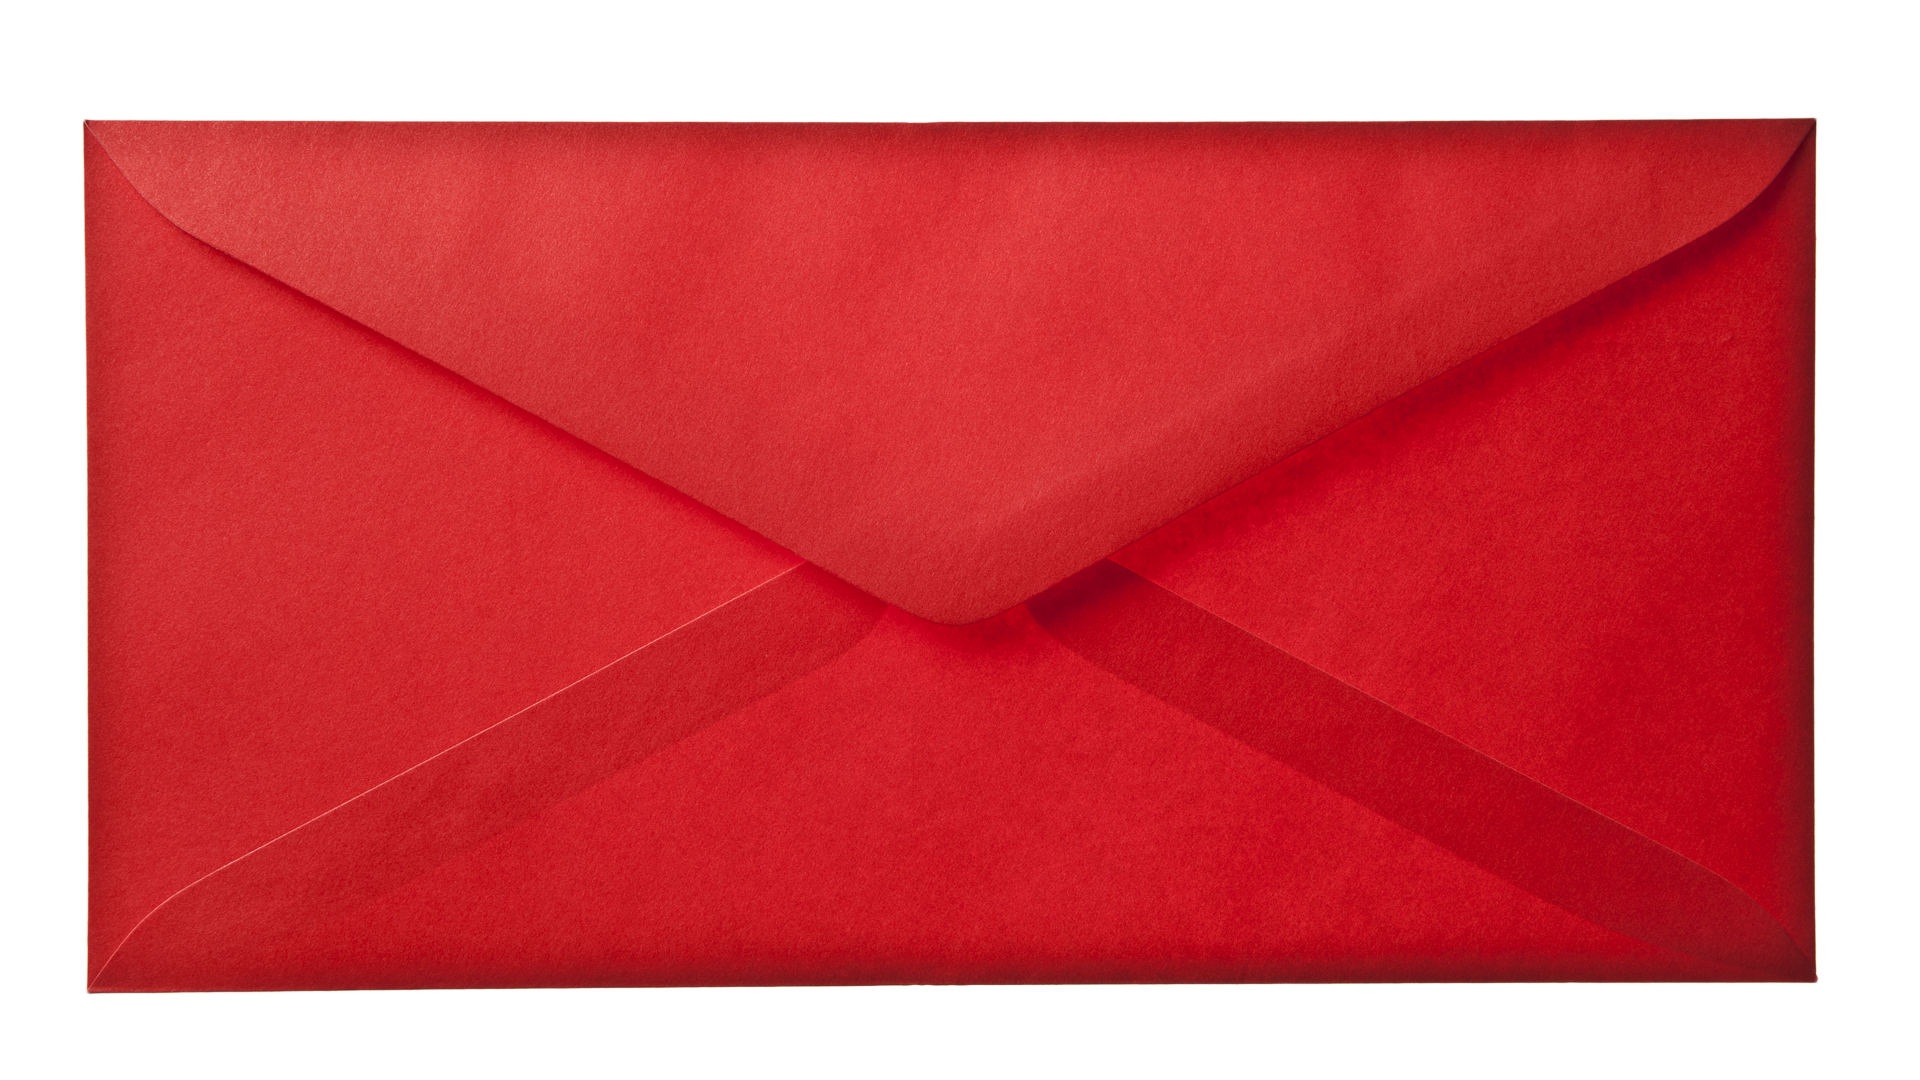 Red Envelope Paper Background Layer HD